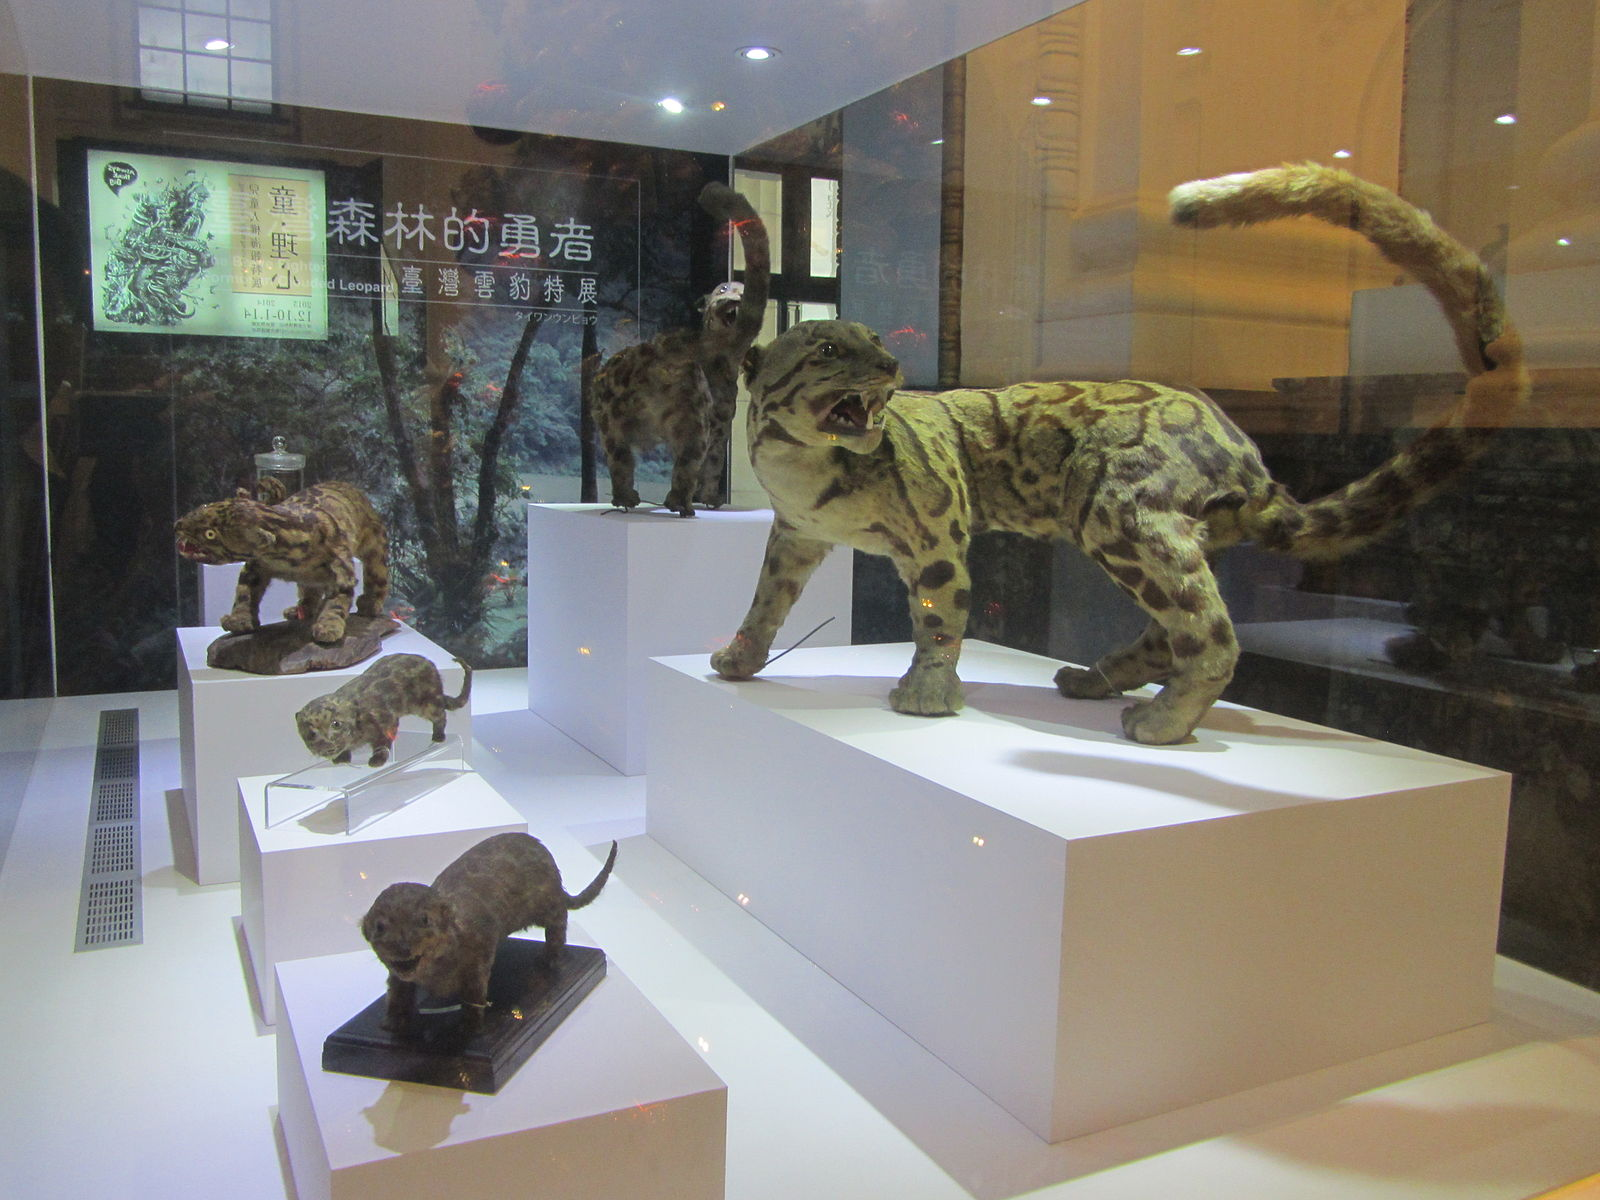 Specimen of the animal in the National Taiwan Museum. Credit: SSR2000/Creative Commons